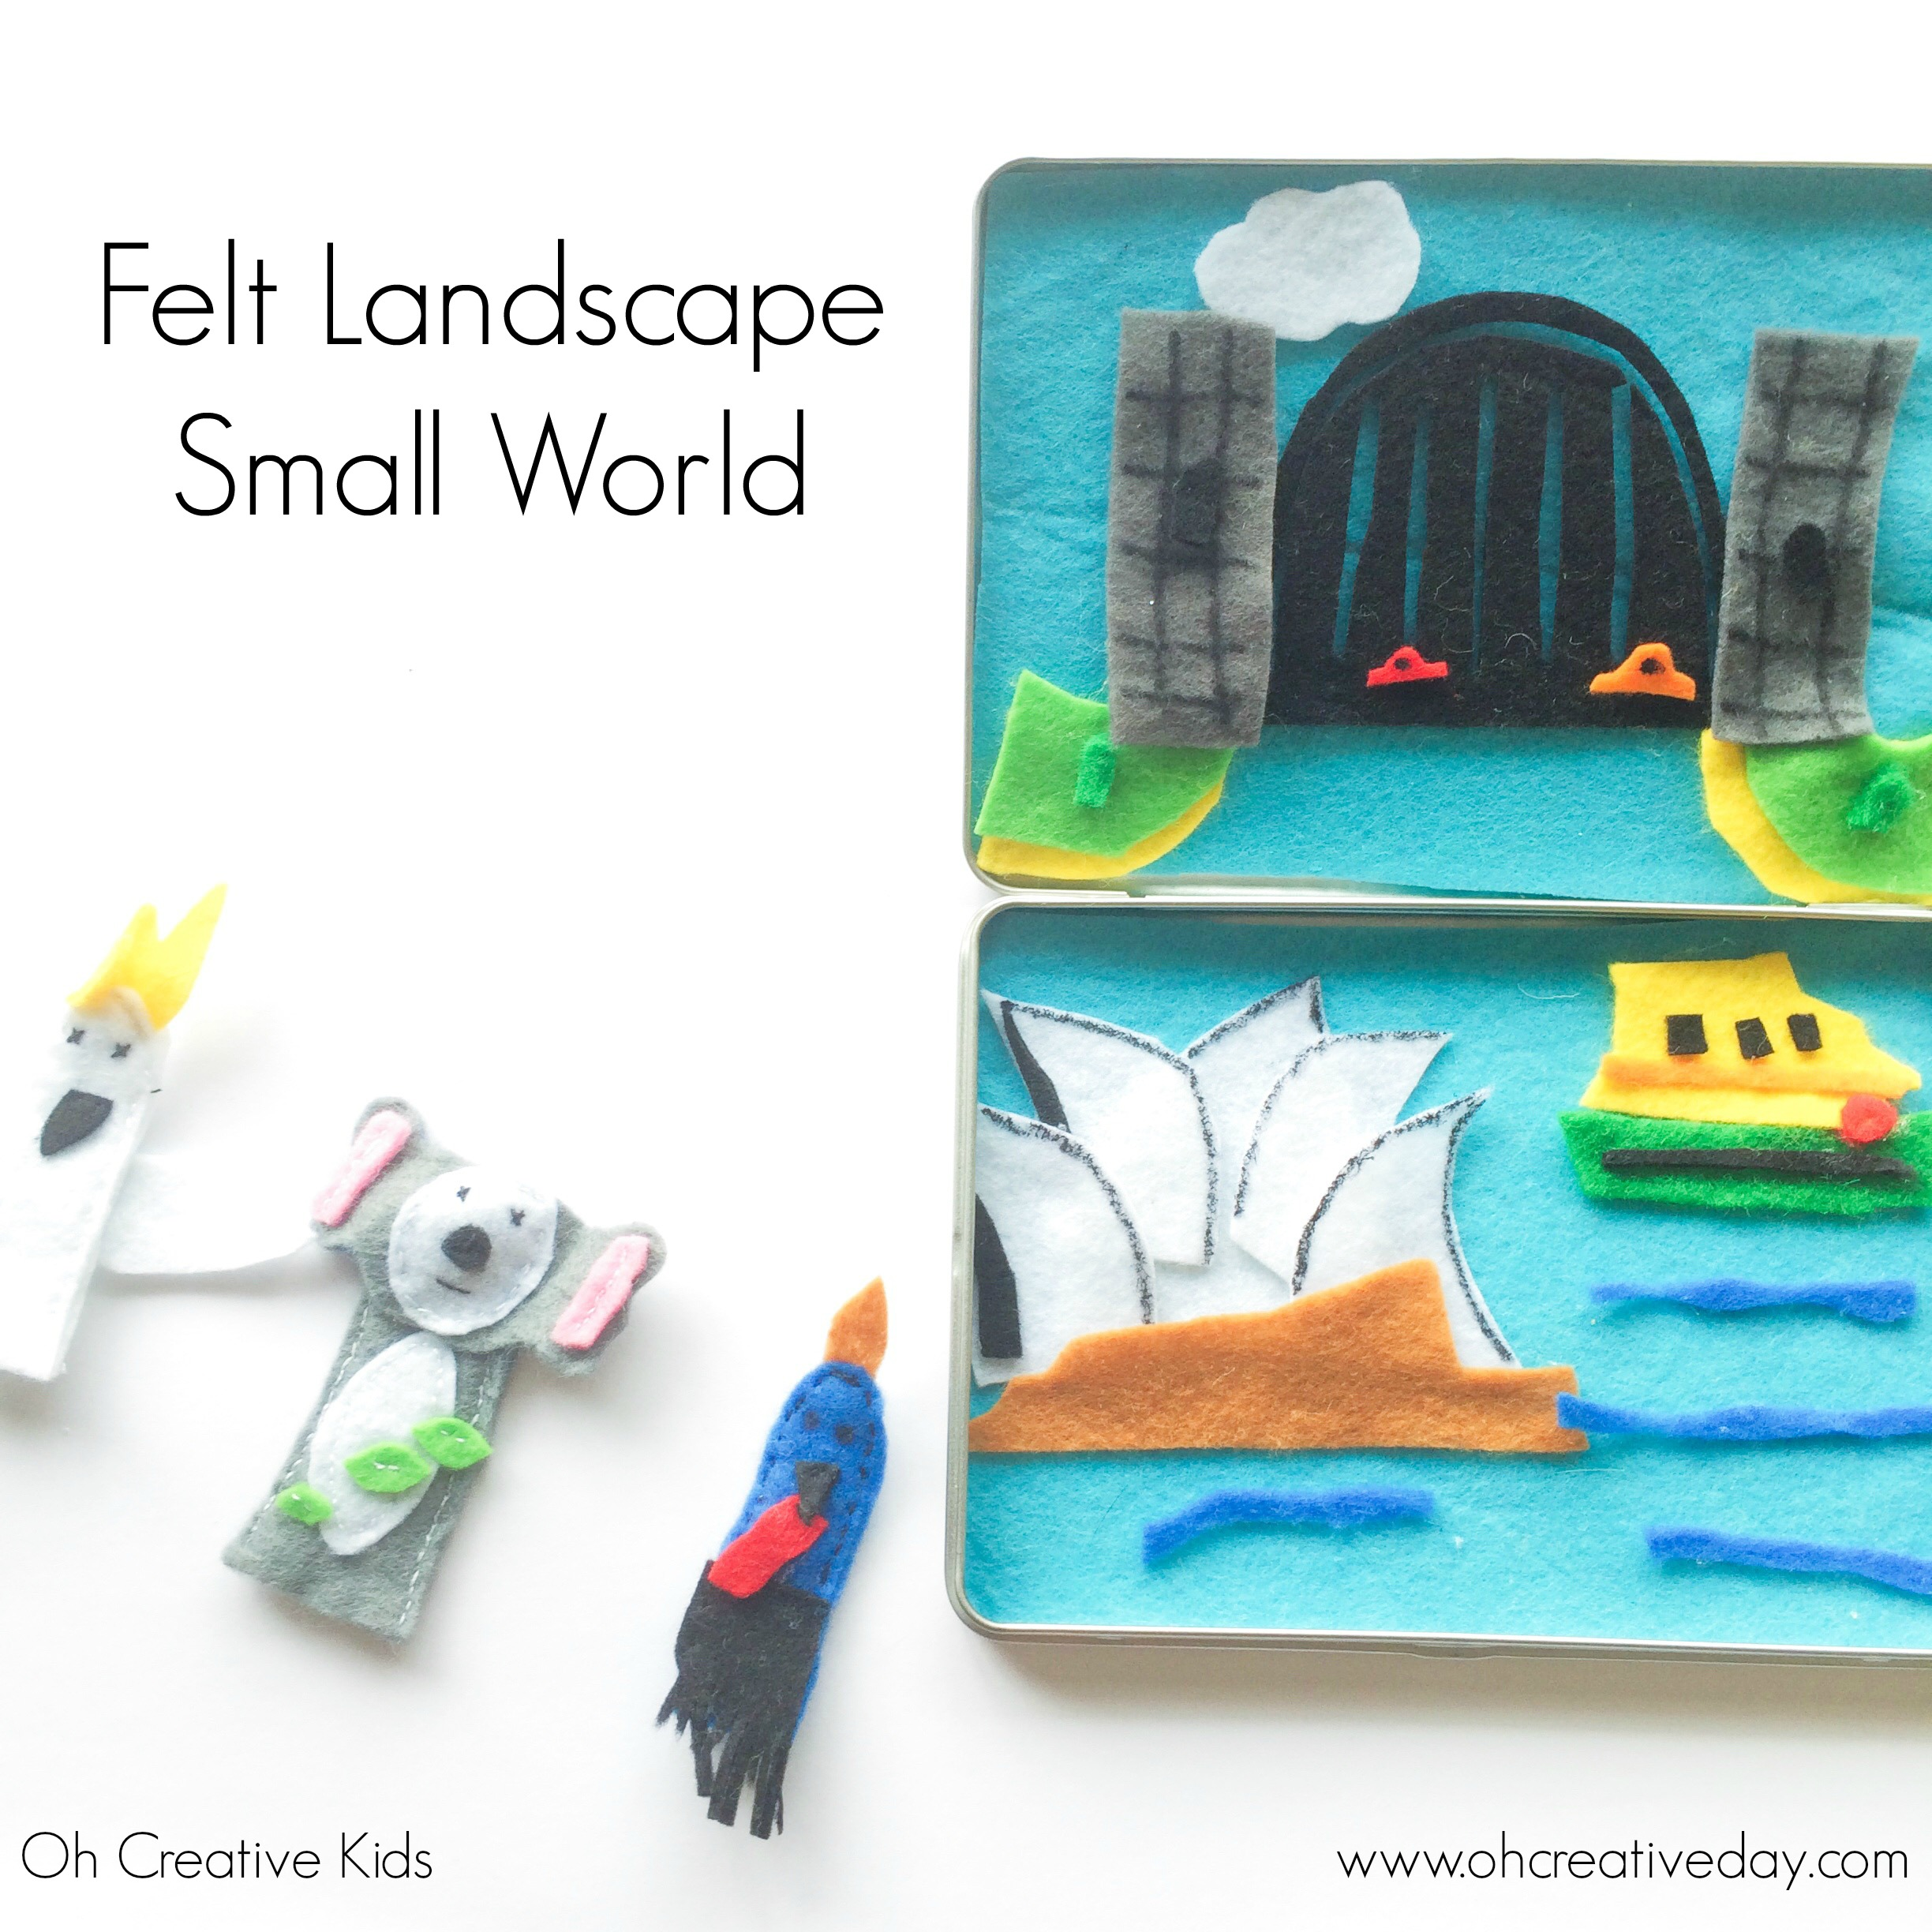 Felt Landscape Small World Play